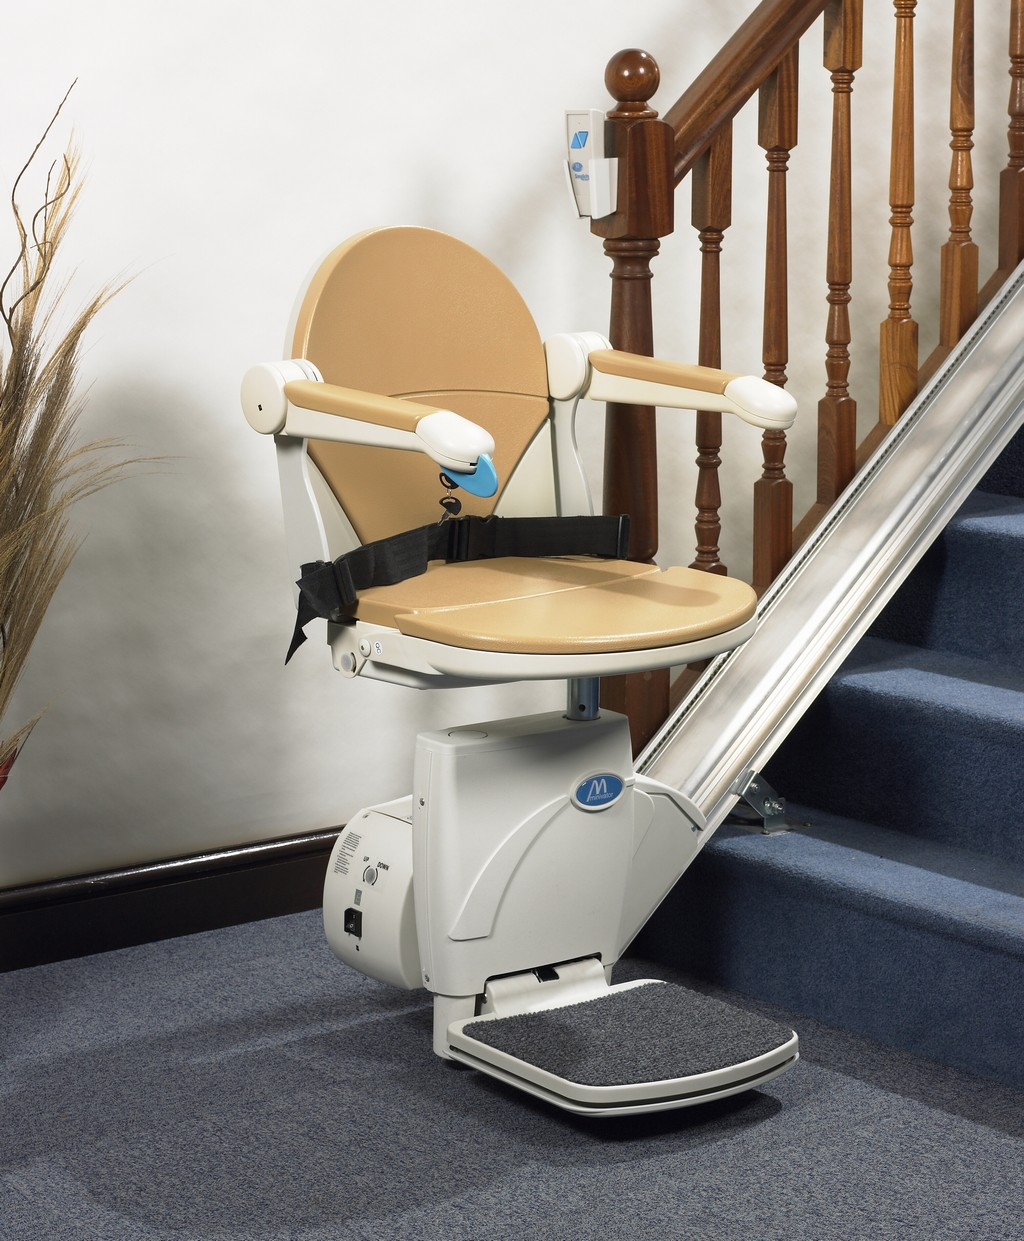 stair lift design requirements, stair chair lift uk, concord stair lift chair repair, stairlifts for sale